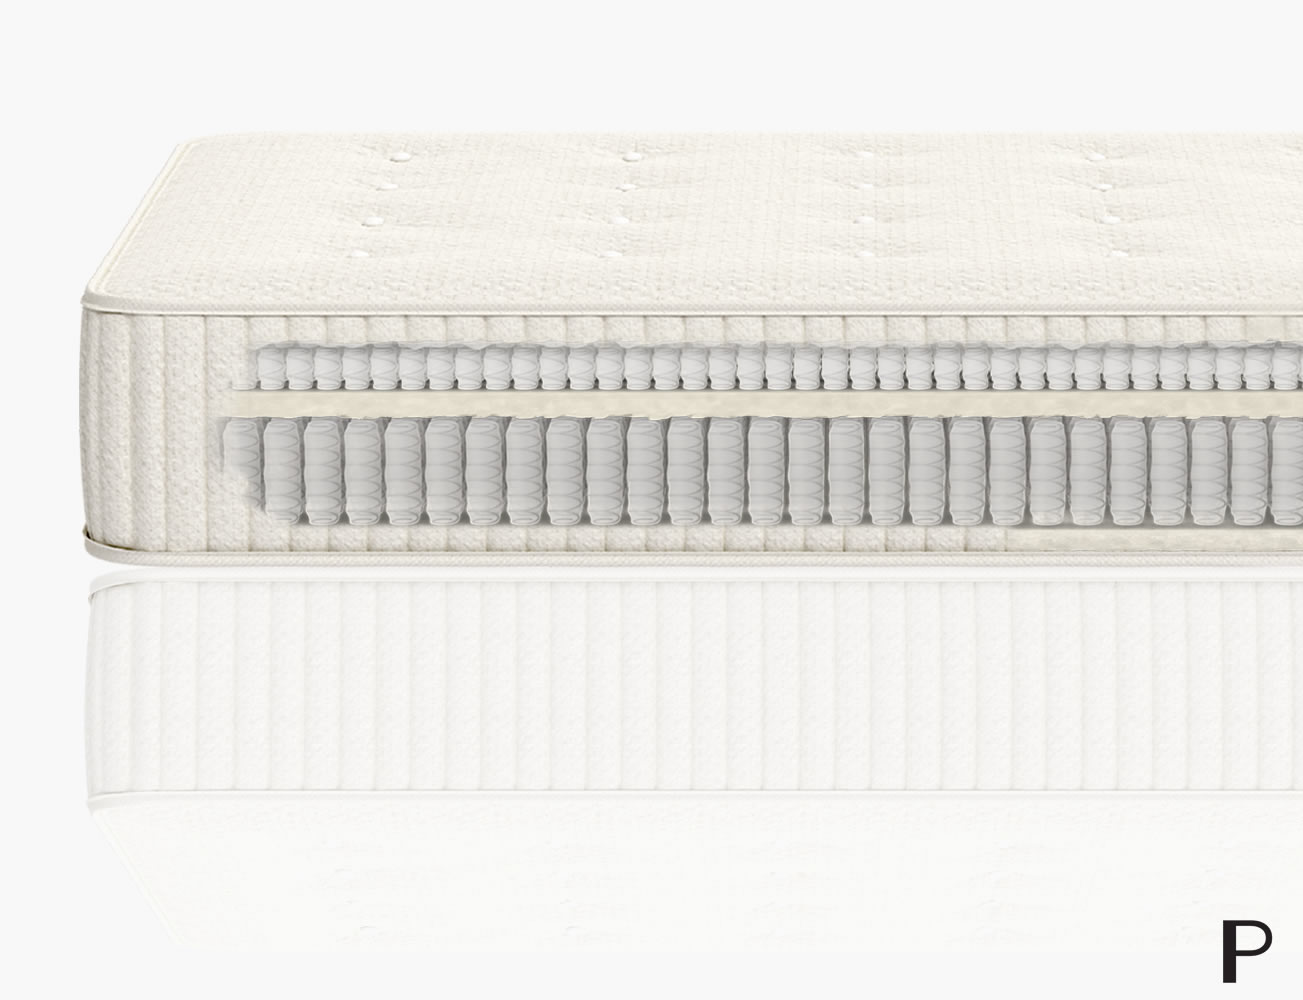 Parachute Mattress  is designed as a luxury eco-friendly mattress combining micro coils and pocketed coil springs with a combination of wool and cotton layers. The benefits of this combination is a firmer mattress for spinal alignment and overall better support.